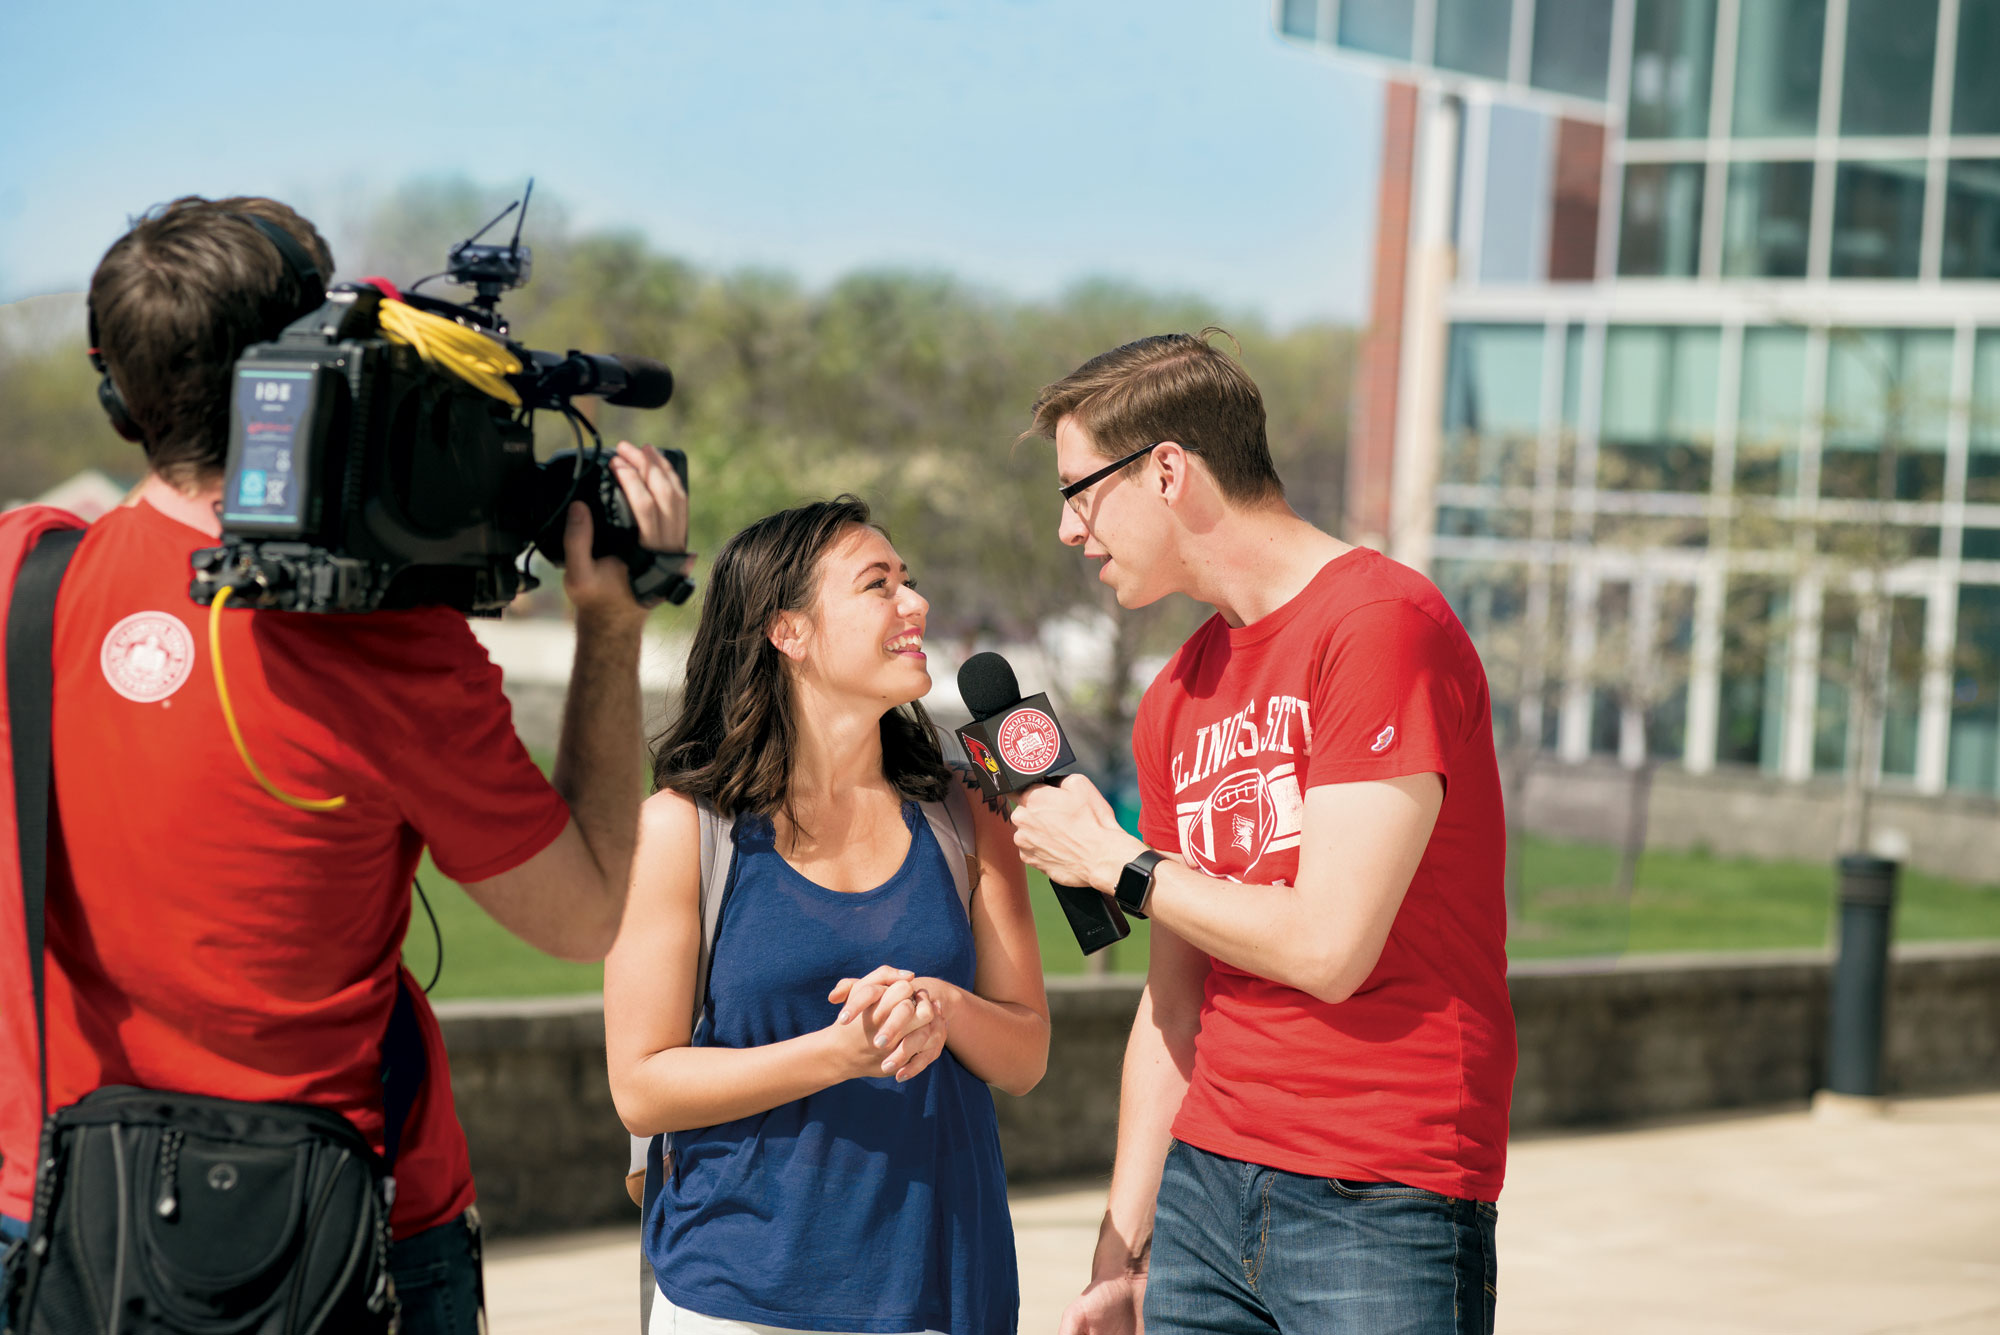 Keith Habersberger talks to a student on camera